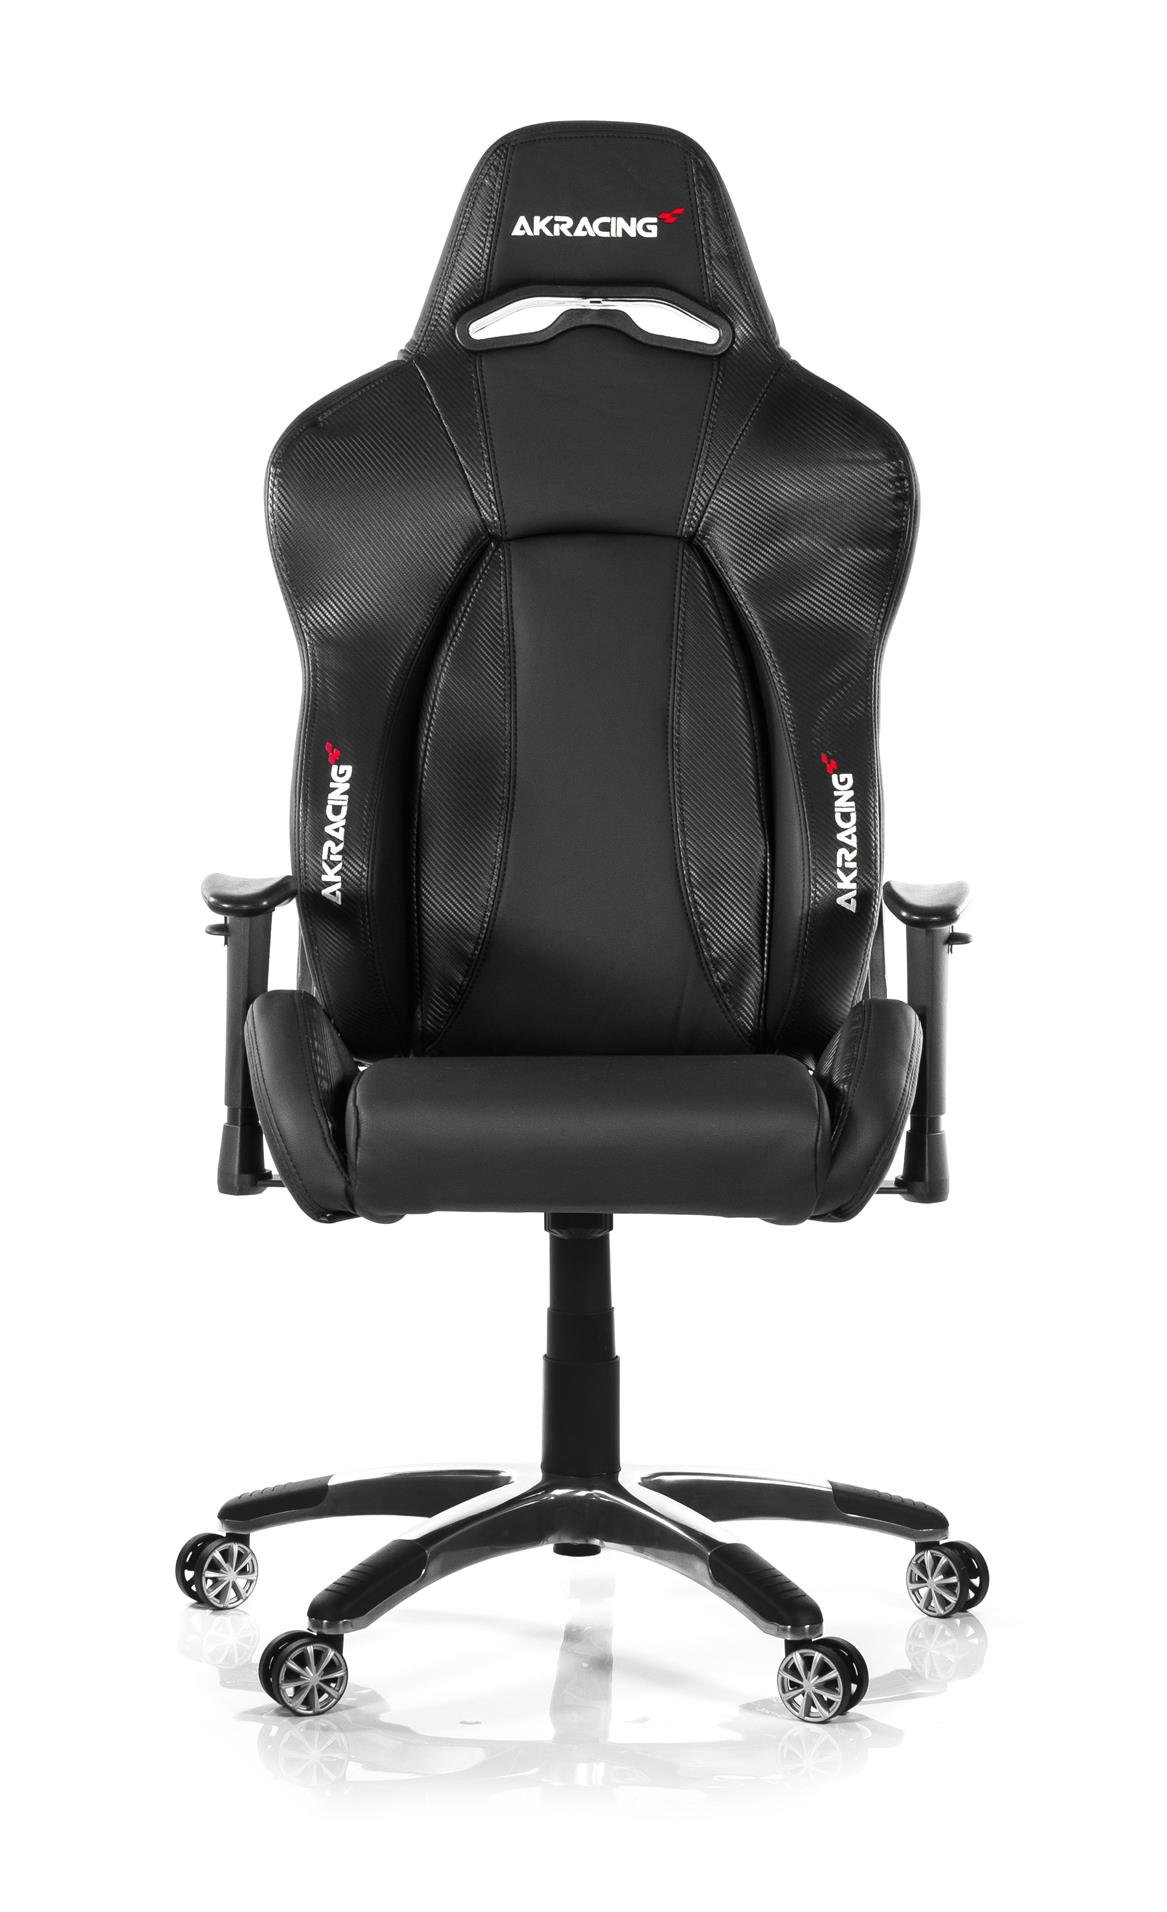 AKRACING PREMIUM STYLE GAMING CHAIR CARBON BLACK V2 PU LEATHER INSTOCK